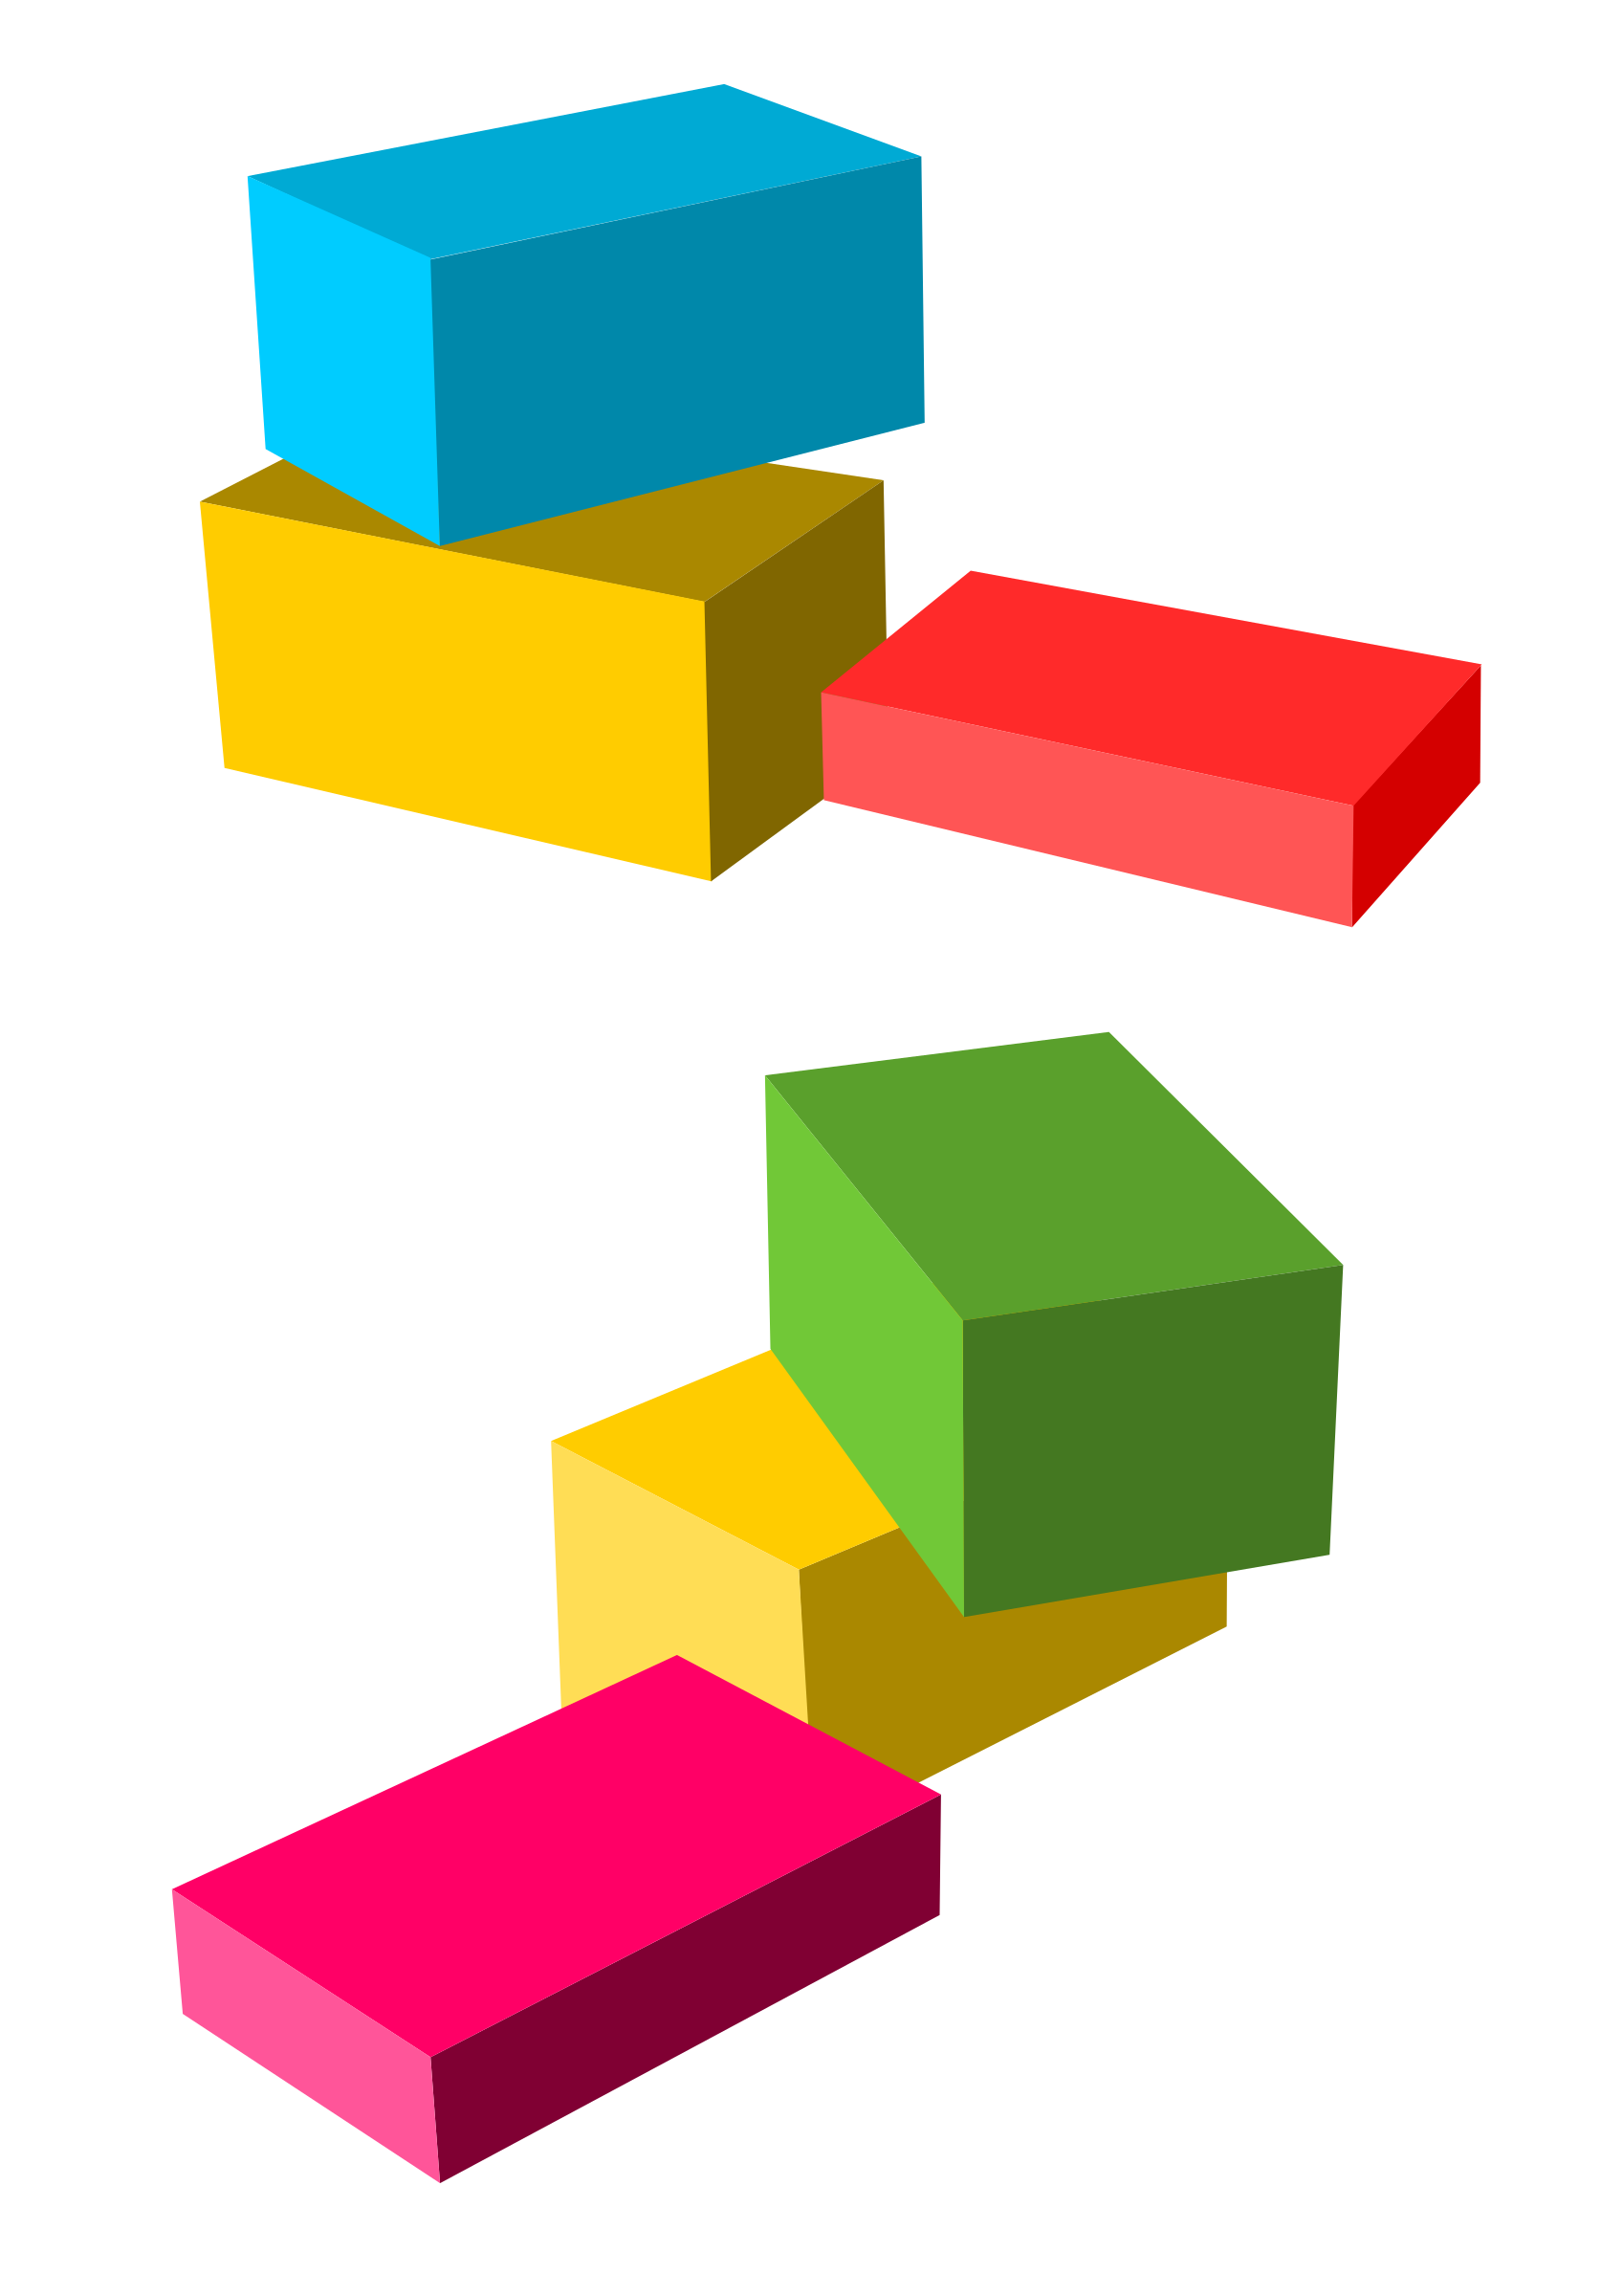 Colored boxes by Almeidah